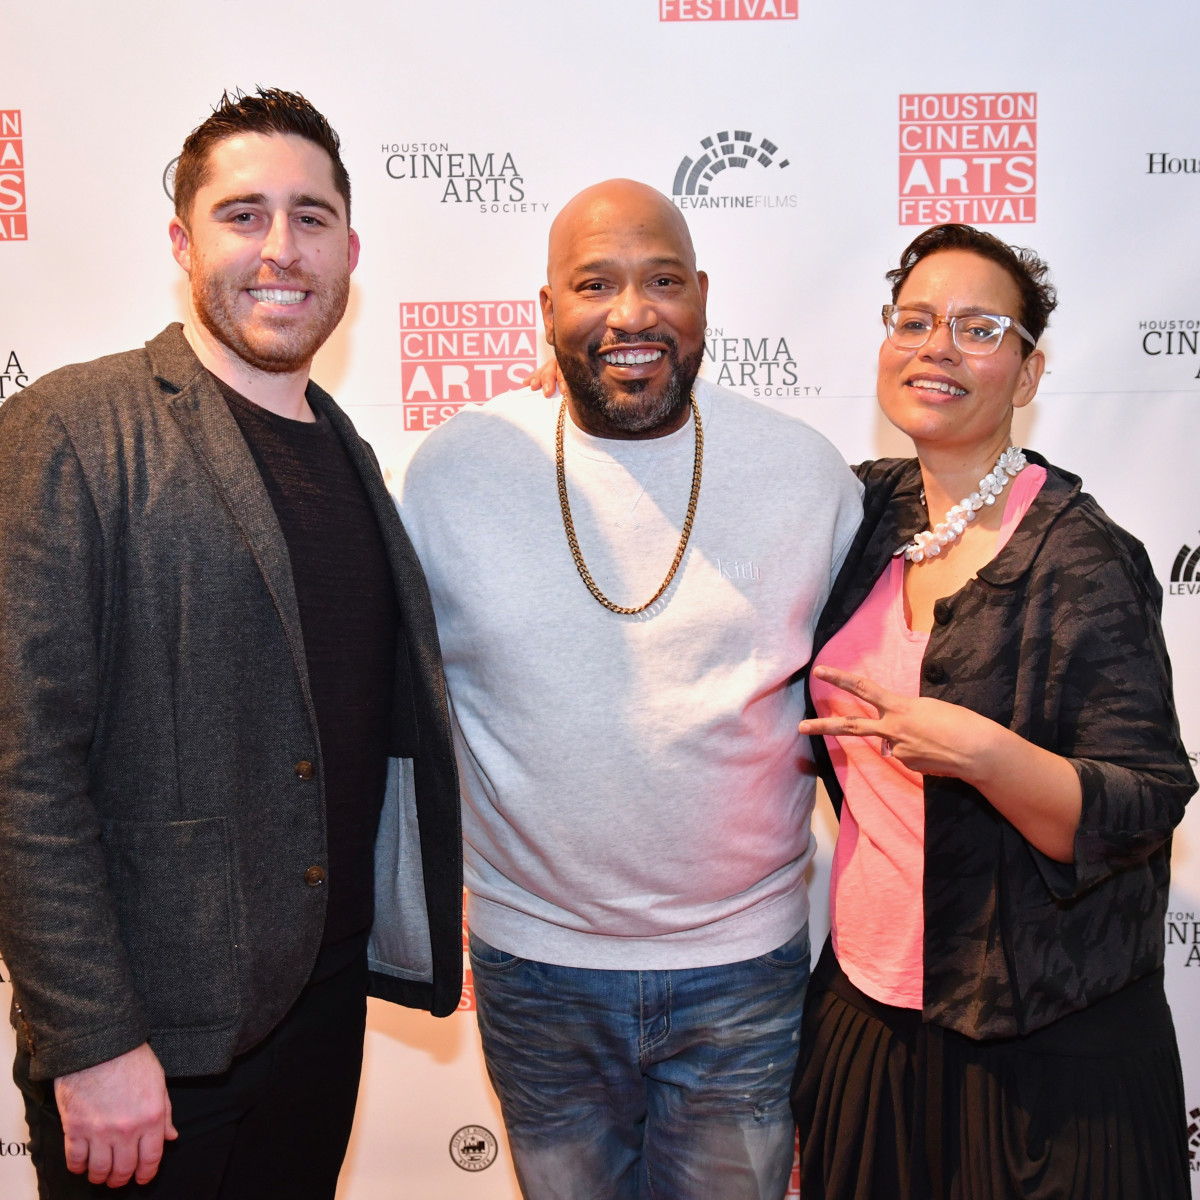 HCAF 2019 Opening Night:Trey Edward Shults, Bun B, Jessica Green